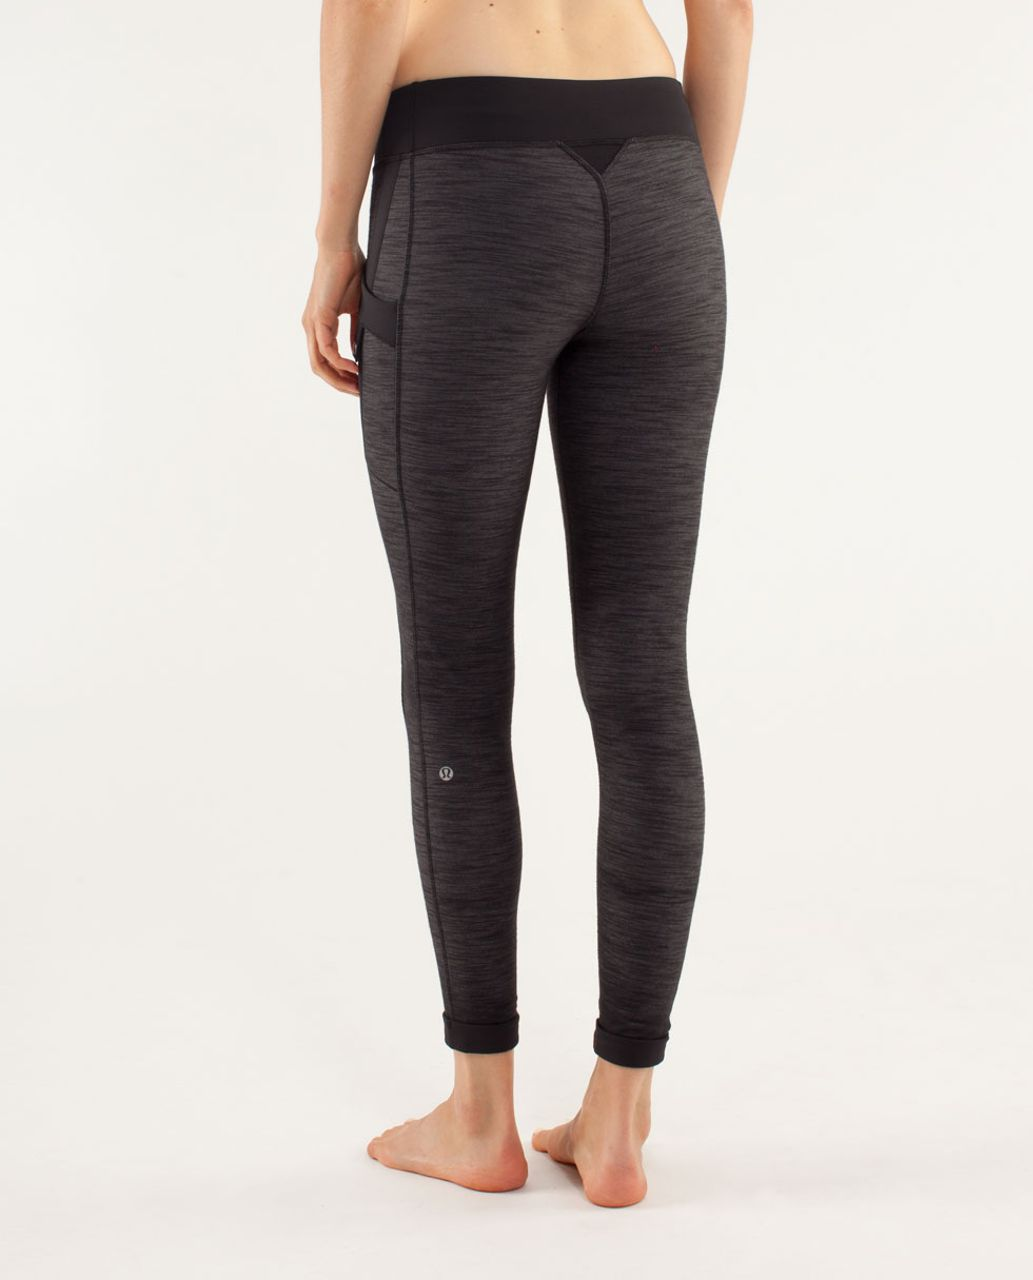 23319d7b27244 Lululemon Warrior Pant - Black Slub Denim / Black - lulu fanatics